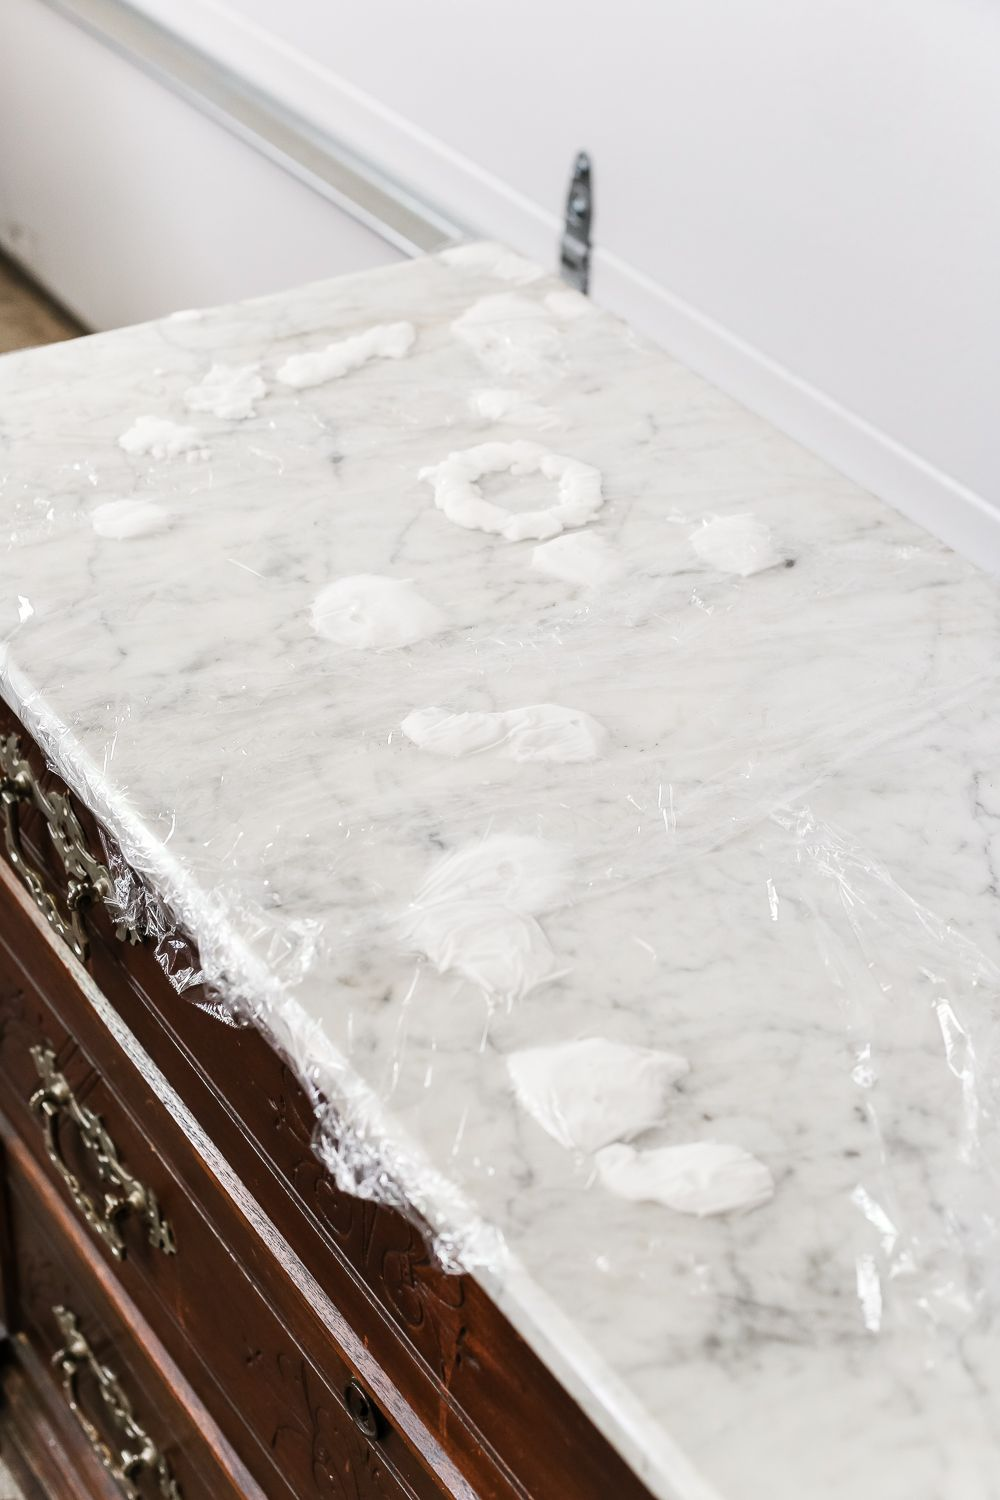 How To Remove Stains From Marble Foyer Chest Makeover Blesserhouse A Quick And Simple Tutorial For Removing White Using Kitchen